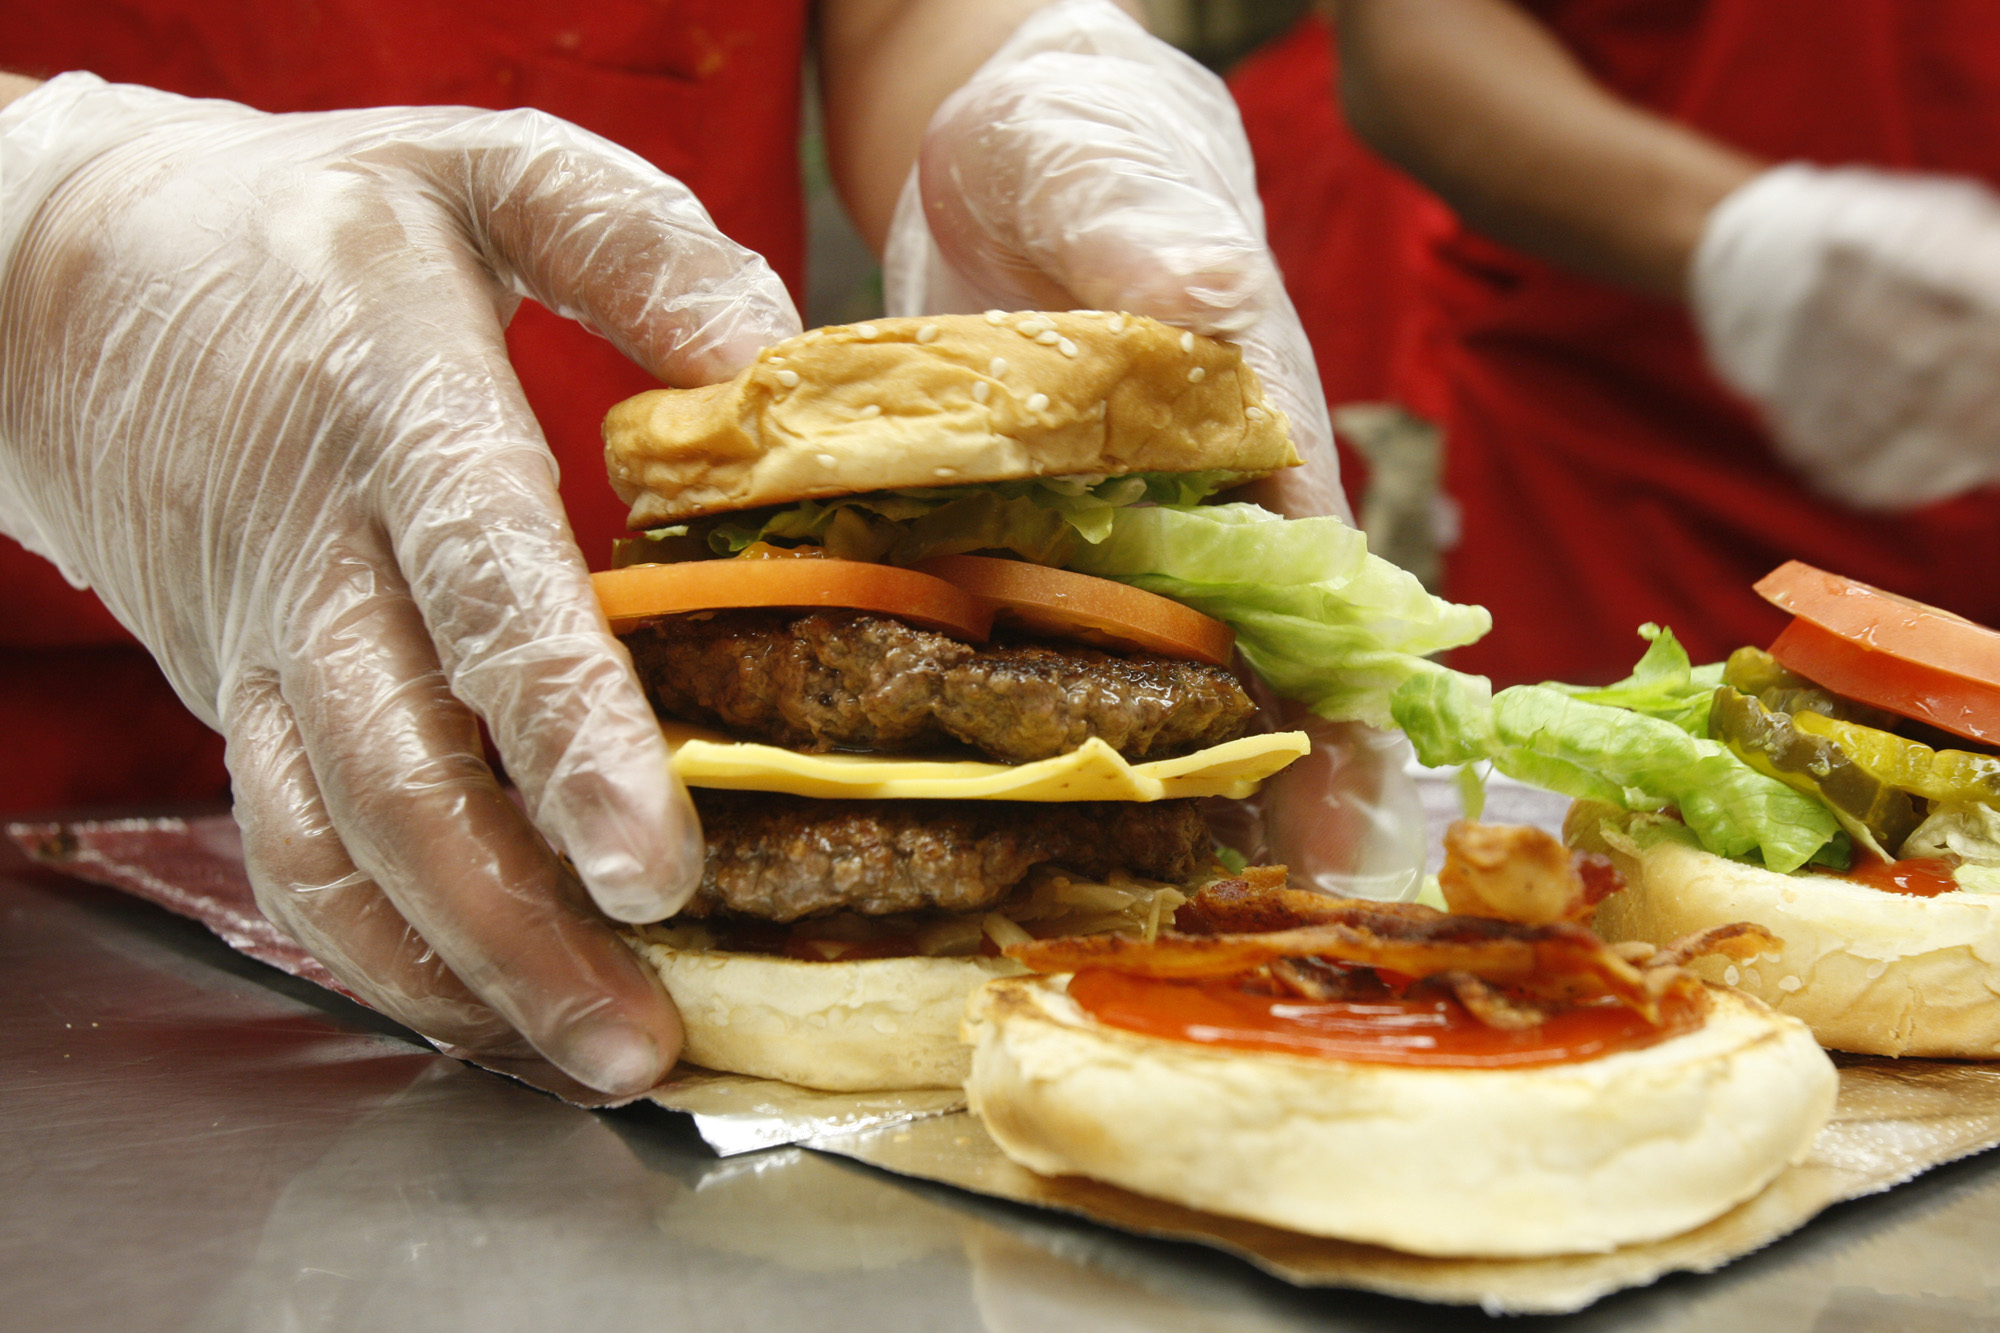 Hamburgers are made at Five Guys Burgers and Fries, located in Valencia, on March 16, 2011. Five Gu